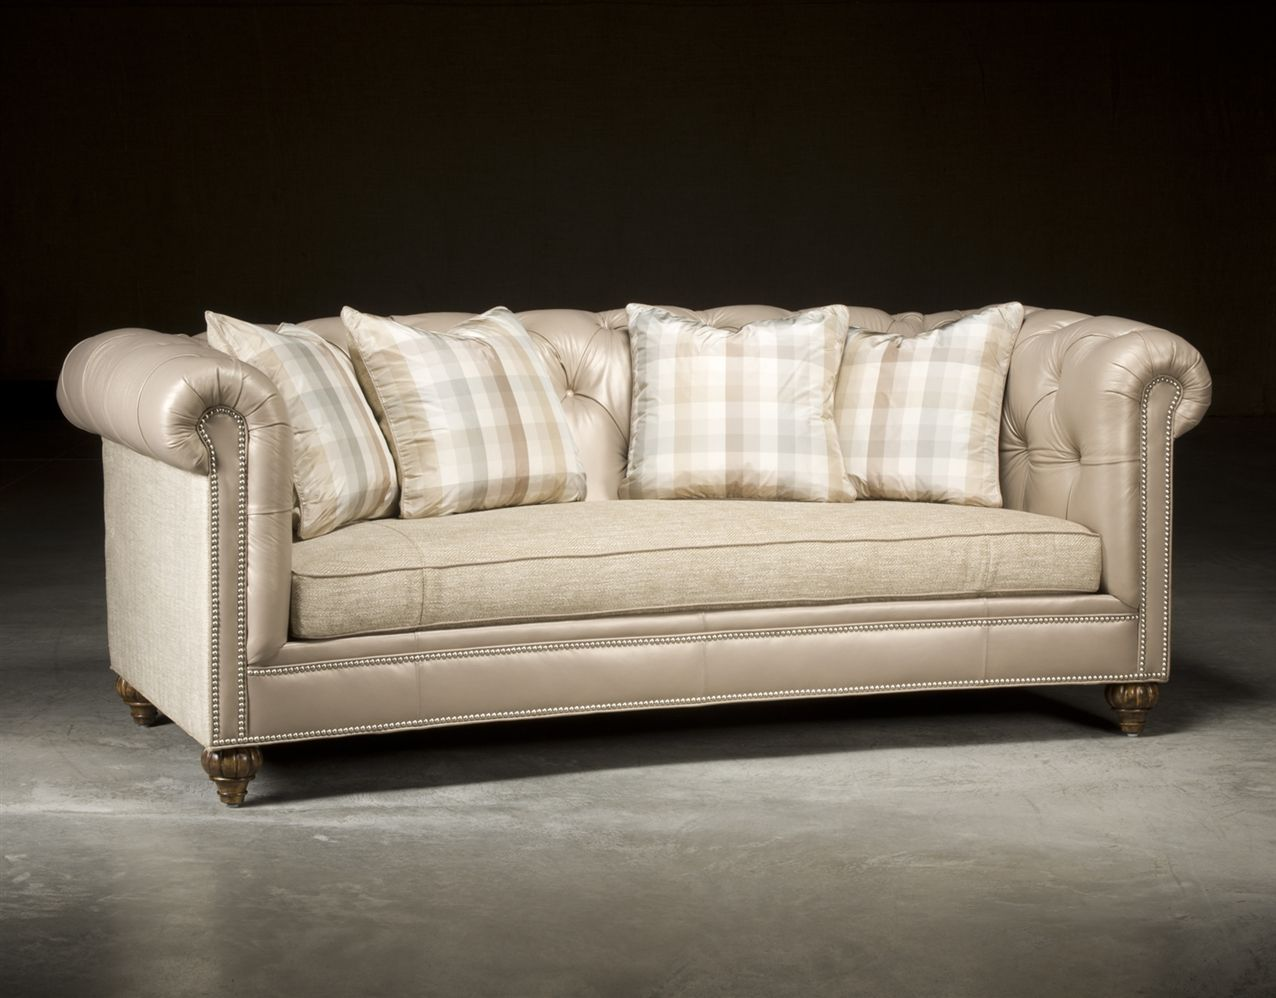 It's possible to create an impressive home and hearth on a budget by sco. High-End Designer Sofas | ... sofa 72 qty description ...